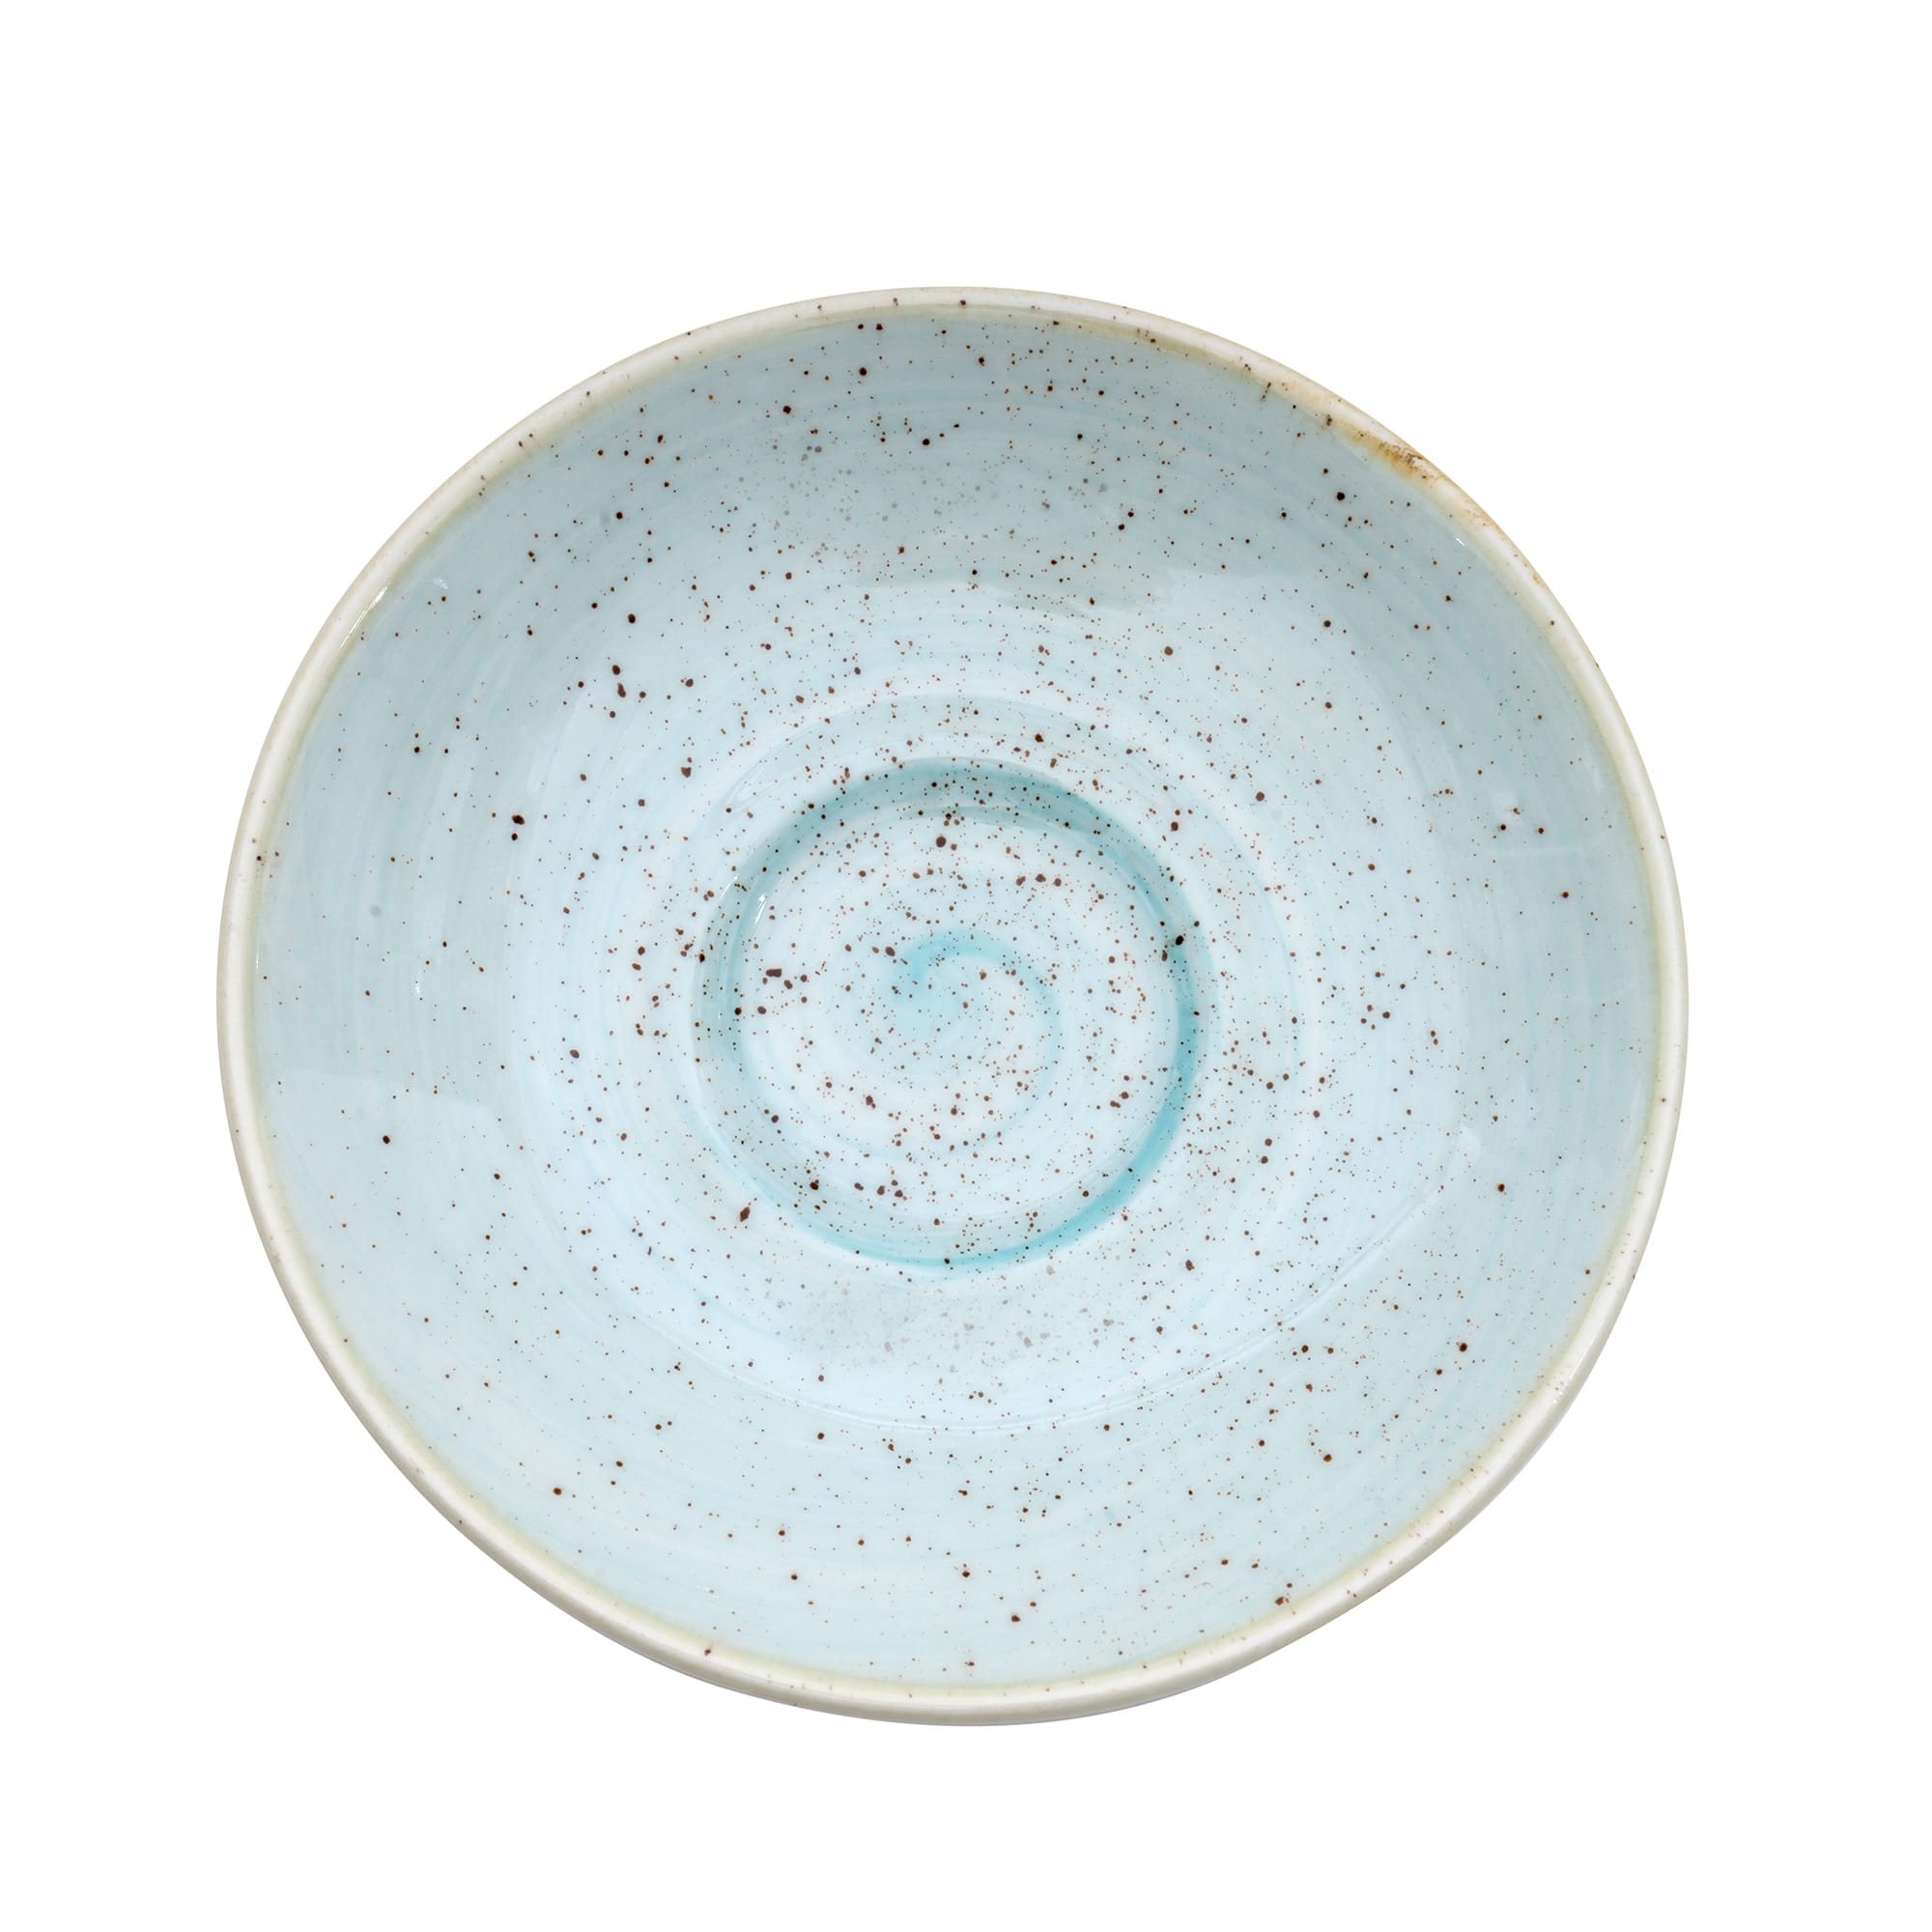 "Churchill SDESESS1 4.5"" Stonecast Espresso Saucer - Ceramic, Duck Egg Blue"